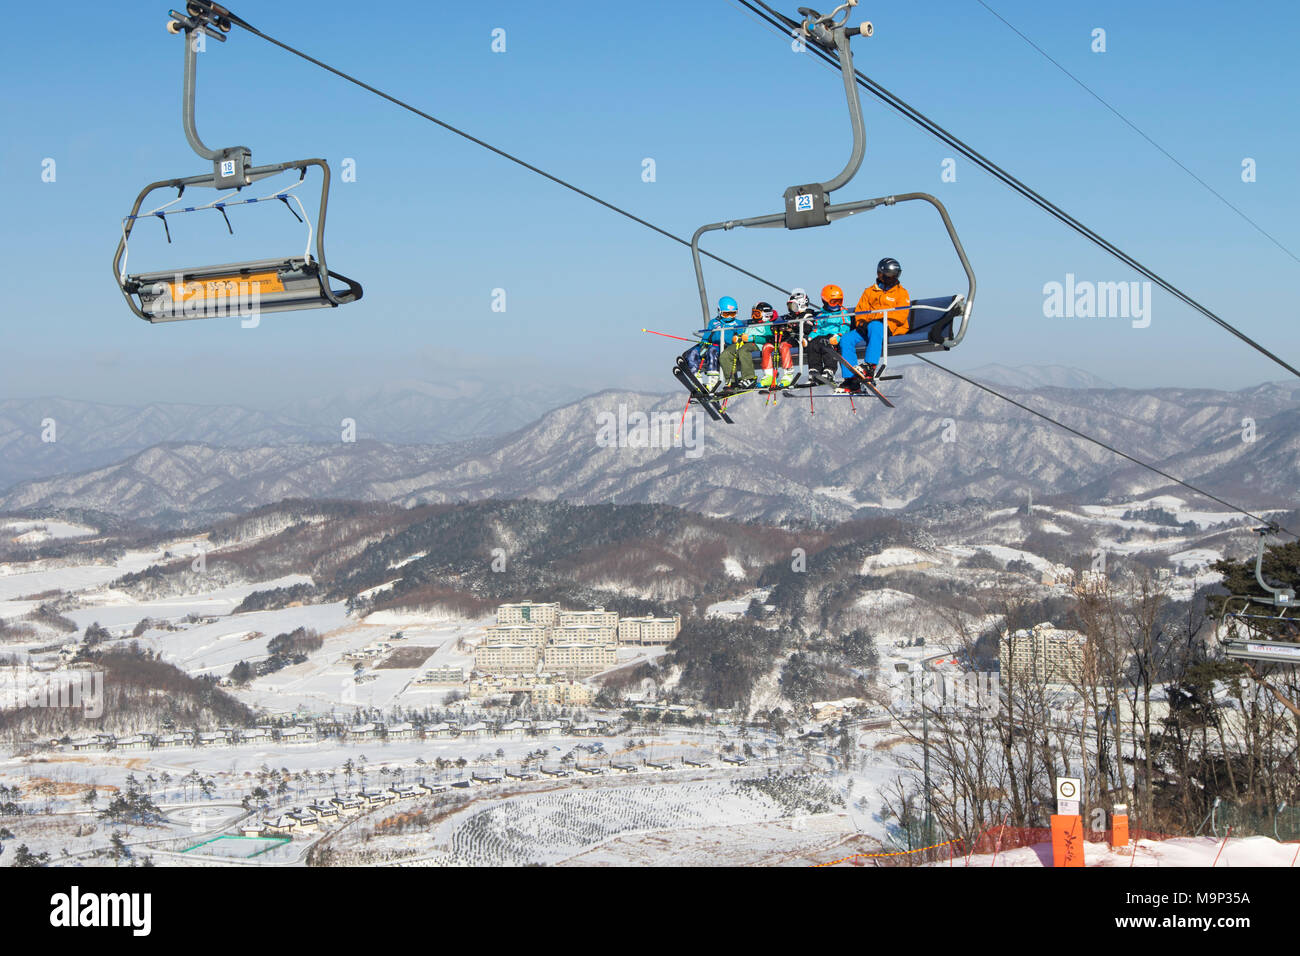 Colorful dressed skiers in a chair lift high above Alpensia resort in the Gangwon-do region of South Korea.  The Alpensia Resort is a ski resort and a tourist attraction. It is located on the territory of the township of Daegwallyeong-myeon, in the county of Pyeongchang, hosting the Winter Olympics in February 2018.  The ski resort is approximately 2.5 hours from Seoul or Incheon Airport by car, predominantly all motorway.   Alpensia has six slopes for skiing and snowboarding, with runs up to 1.4 km (0.87 mi) long, for beginners and advanced skiers, and an area reserved for snowboarders. - Stock Image